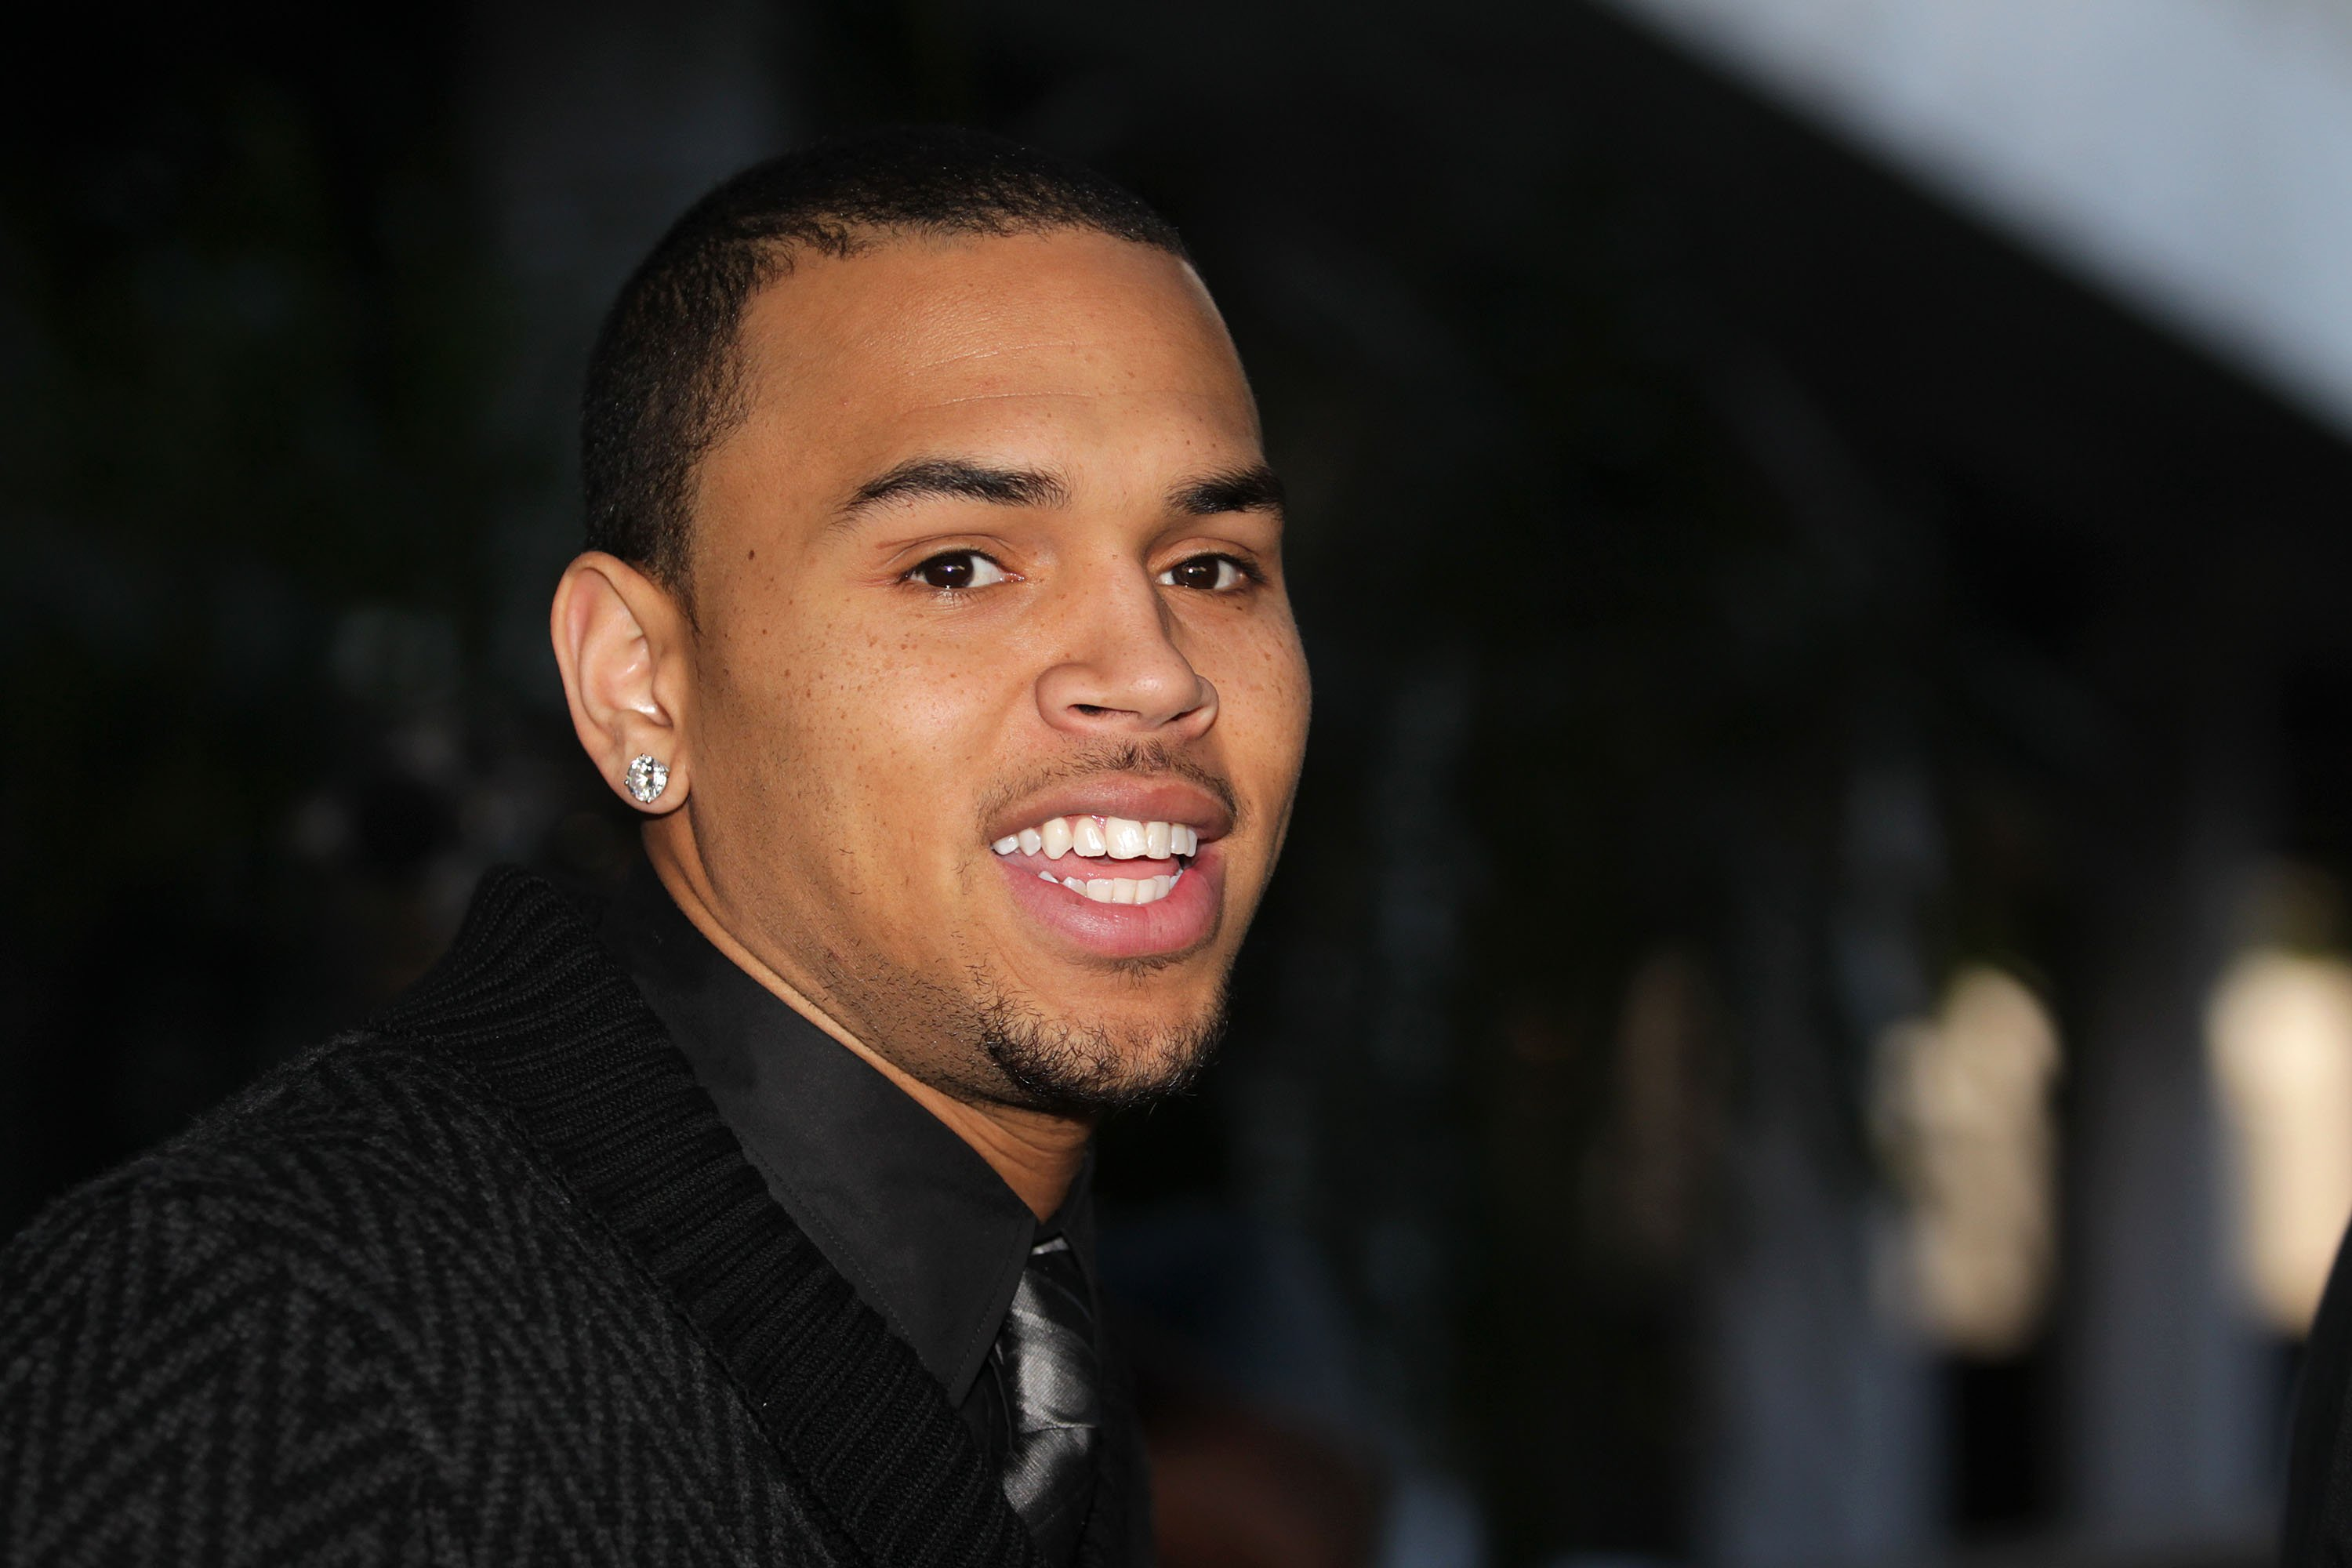 Chris Brown leaving the courthouse after a probation progress hearing in January 2011. | Photo: Getty Images